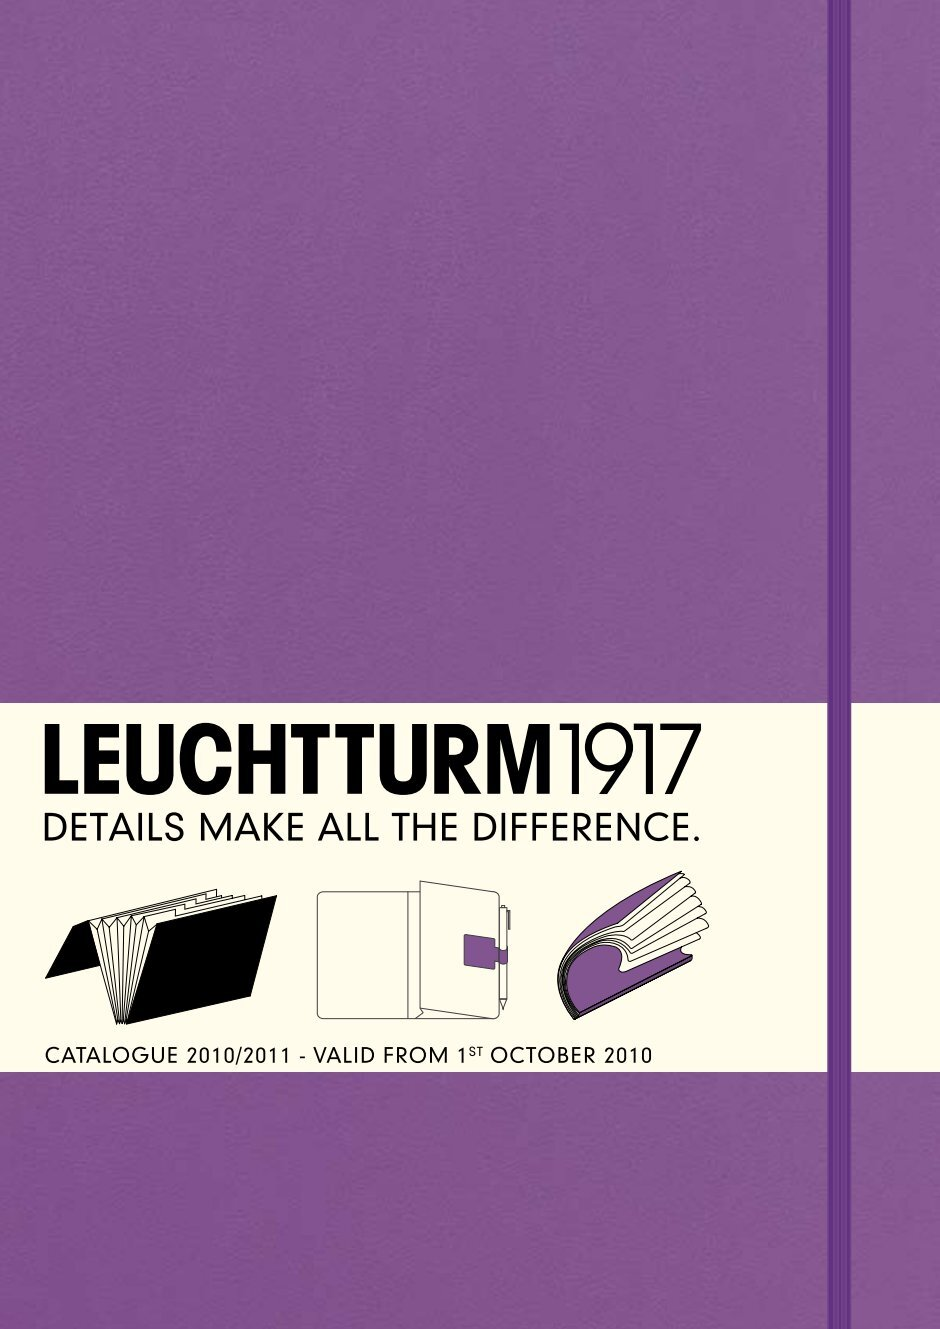 Details Make The Difference 1 free magazines from leuchtturm1917.myinsales.ru